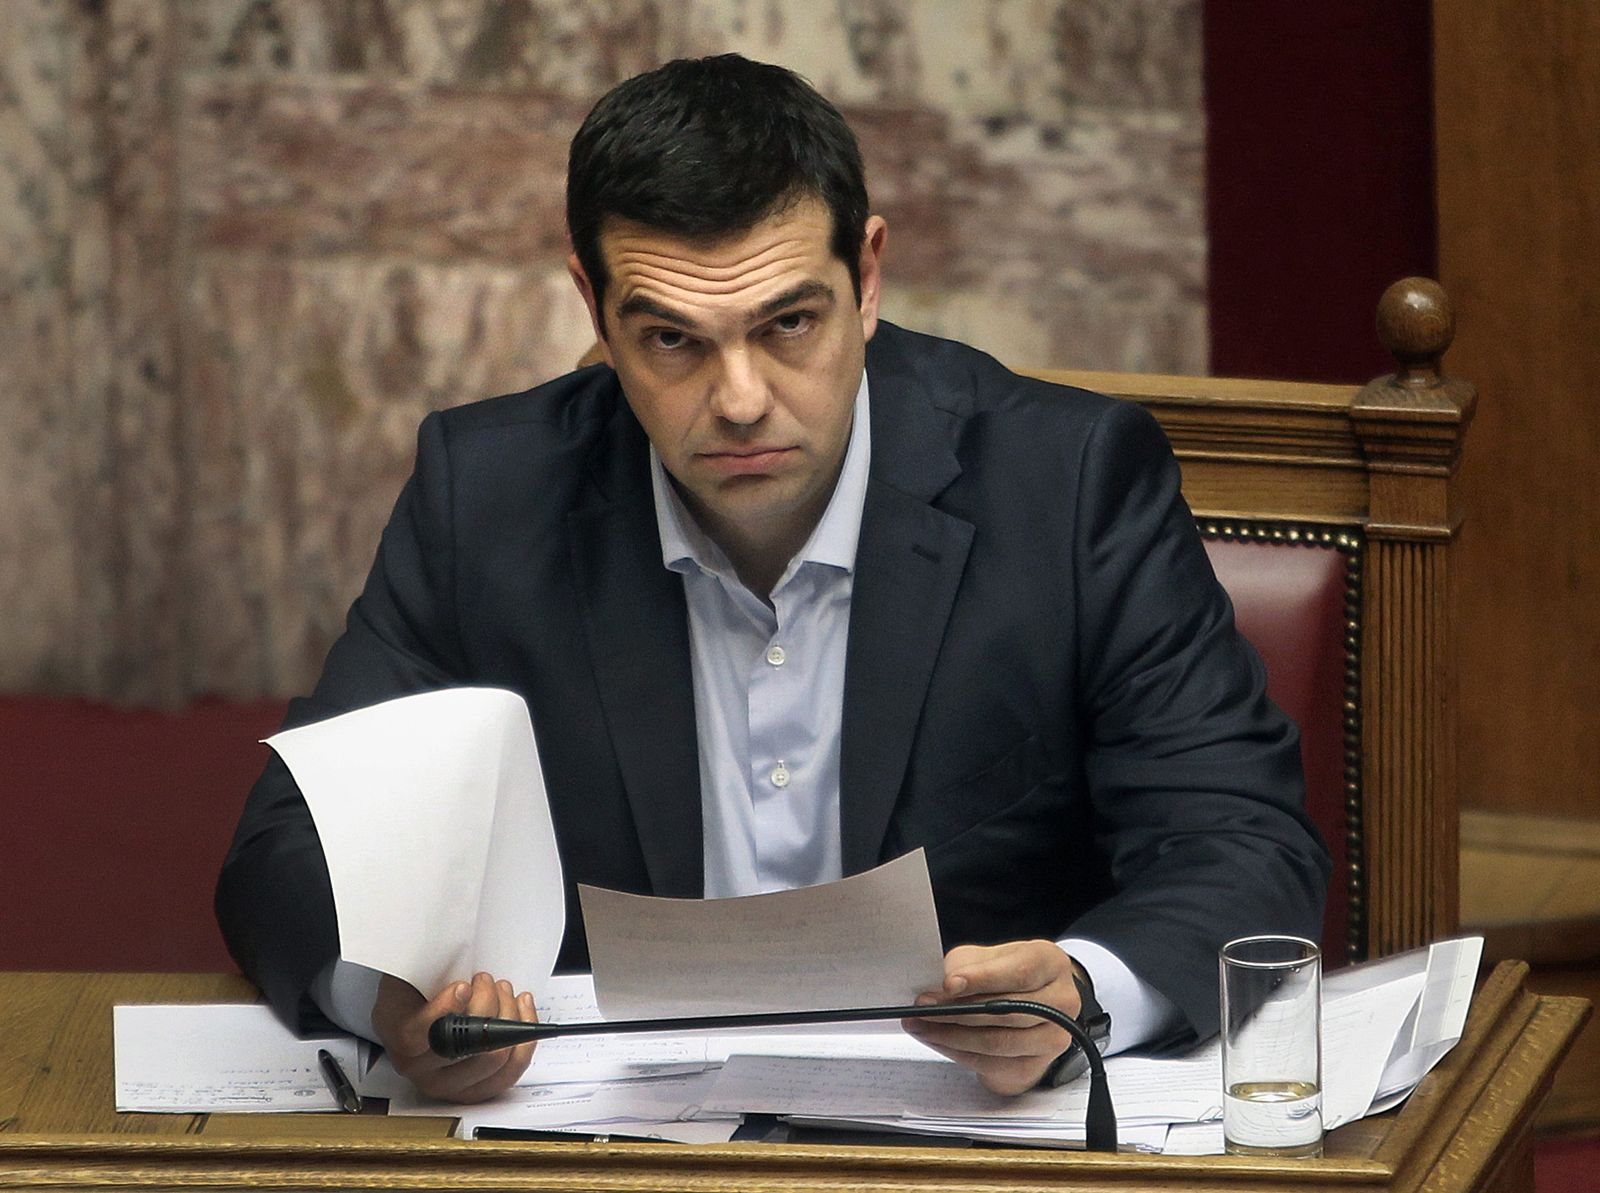 Greek Prime Minister Alexis Tsipras briefs the Parliament on issu